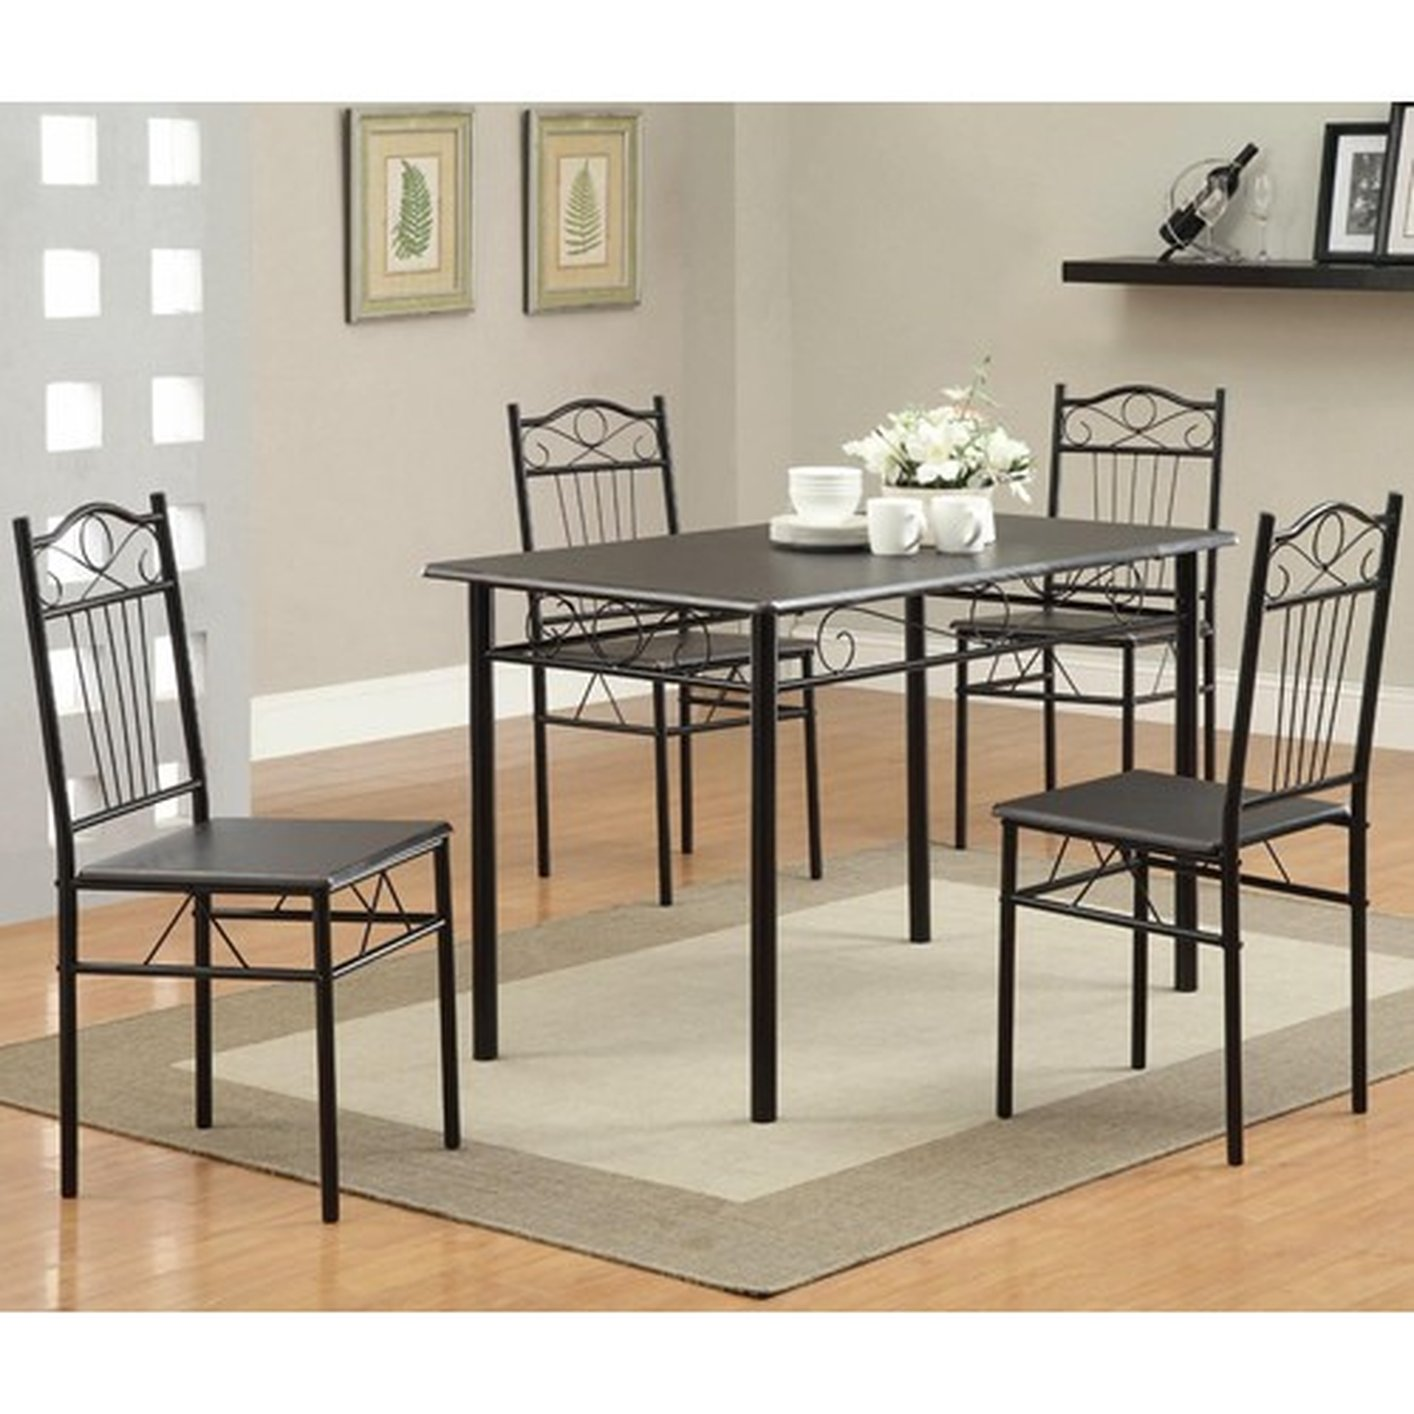 a chairs room furniture metal and steal dining black table ideas set chair sofa